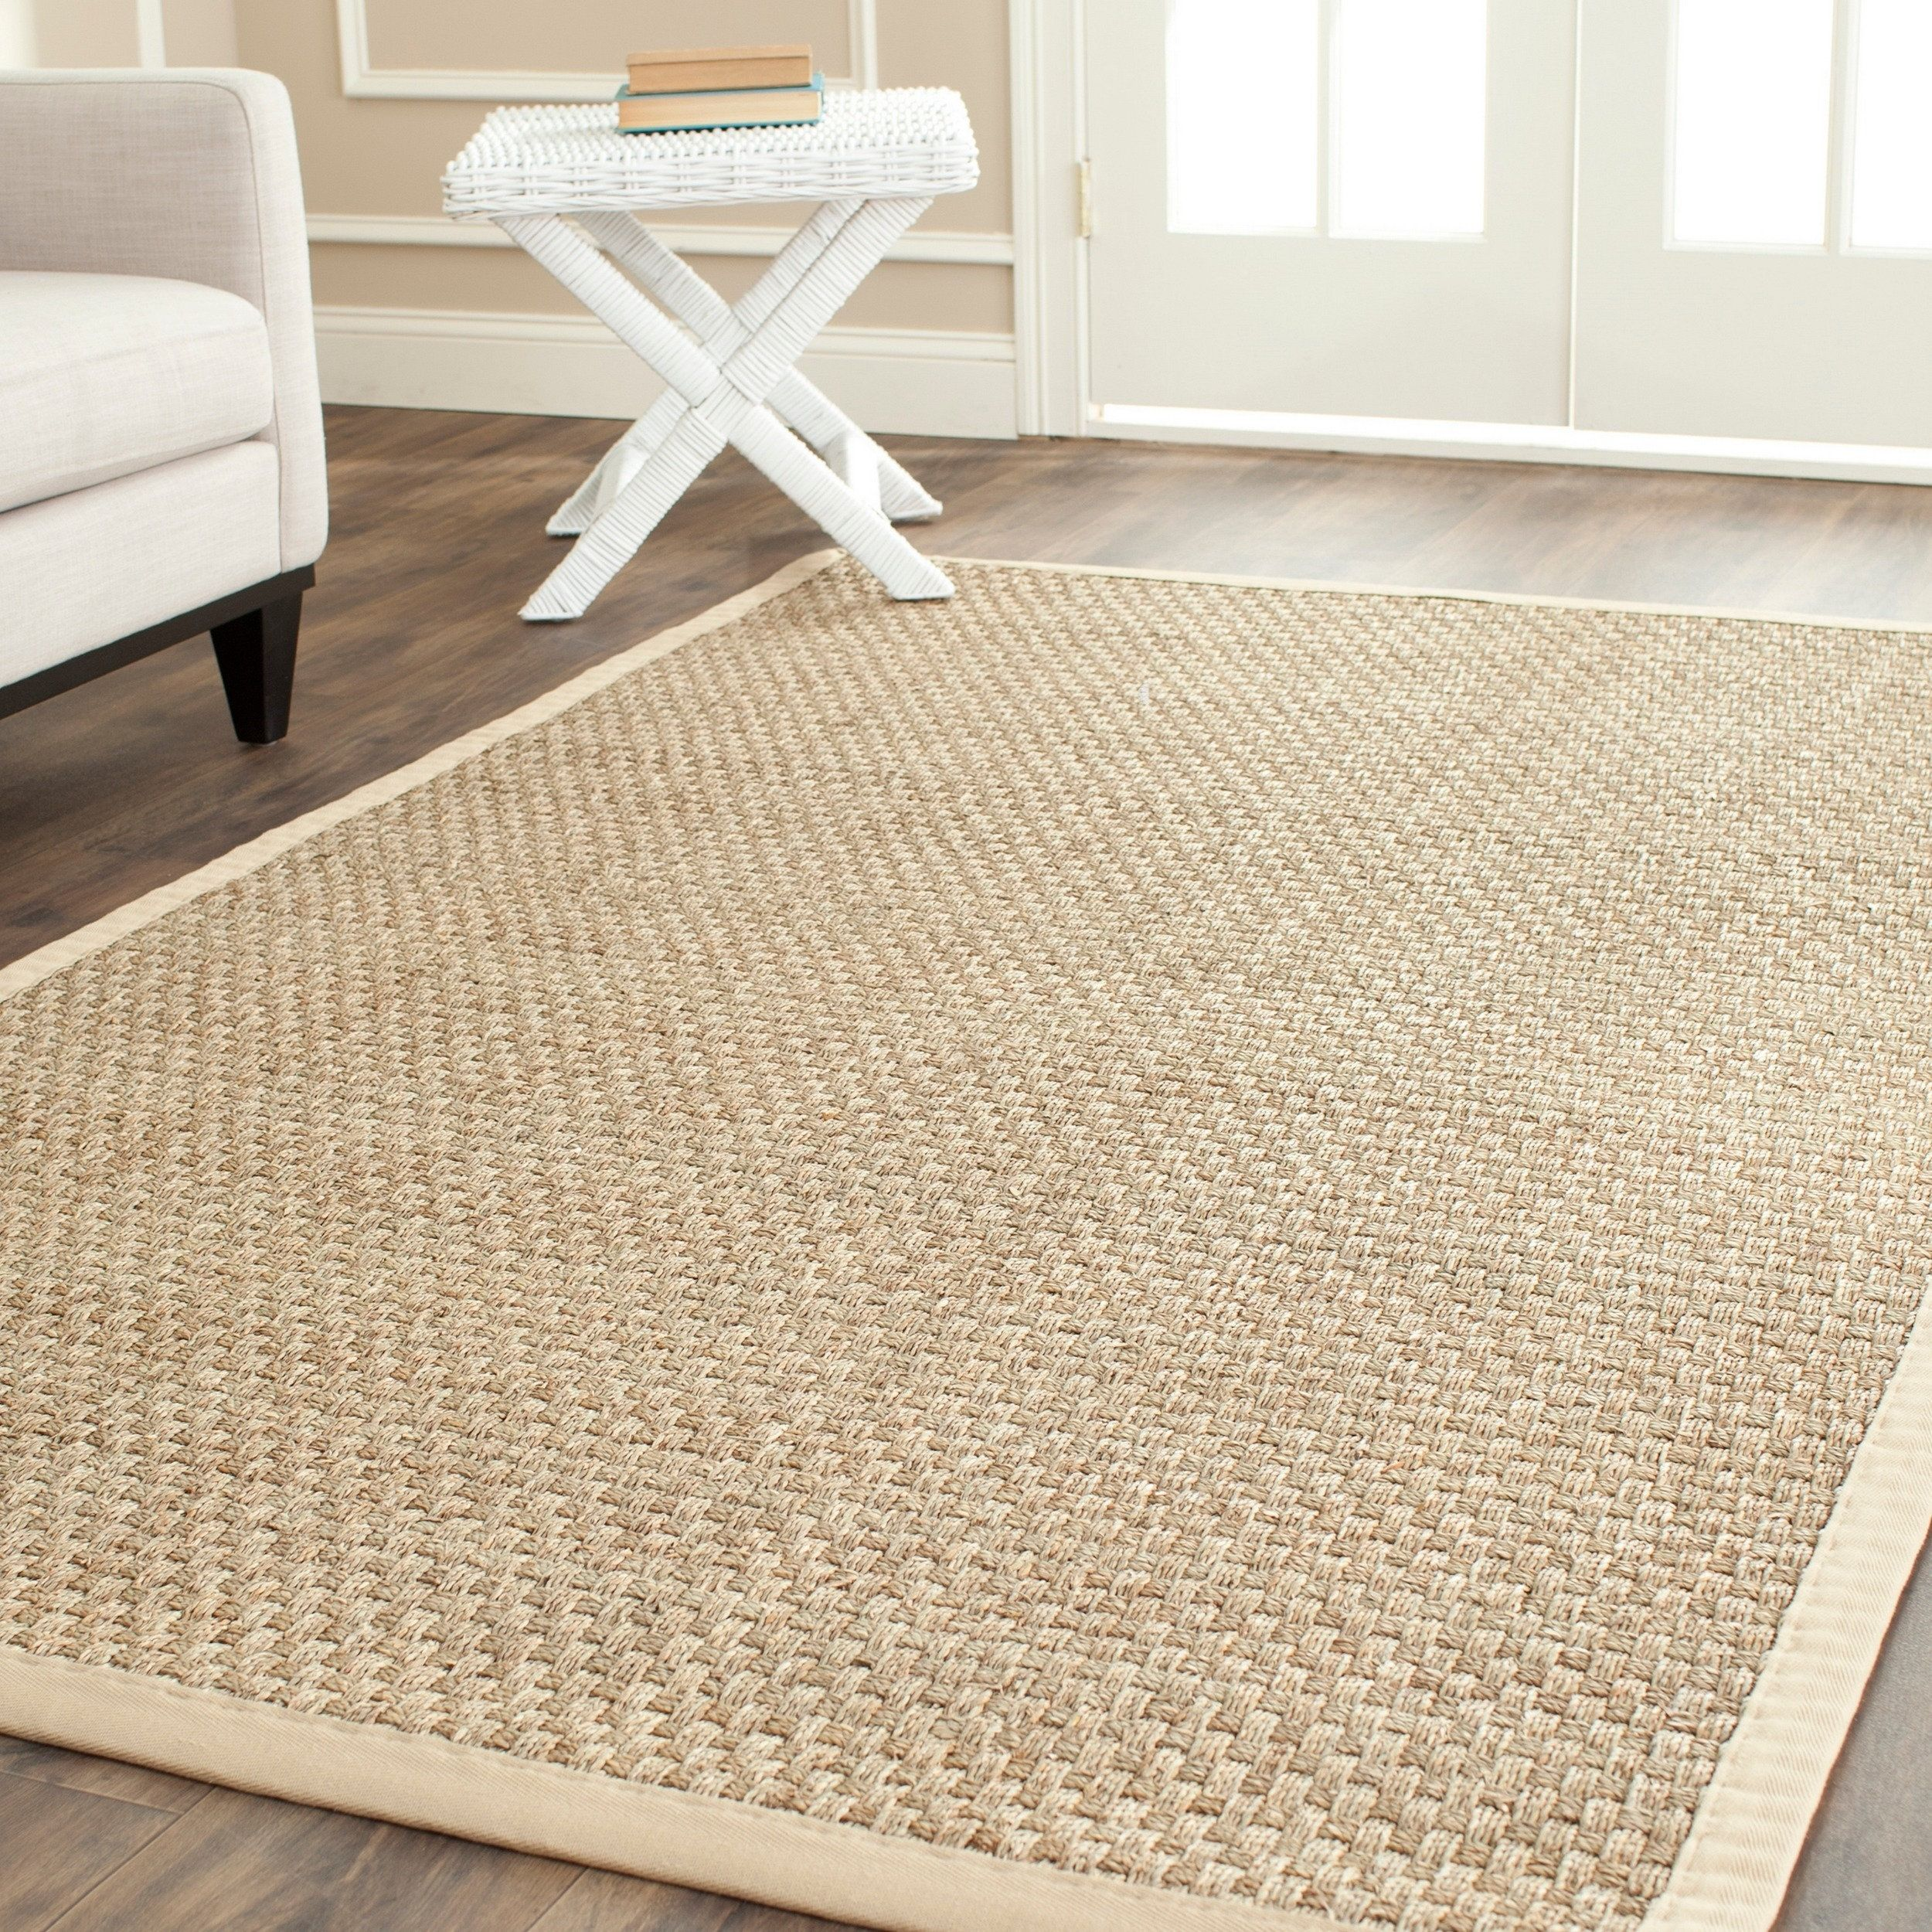 Use Large Area Rugs To Bring A New Mood